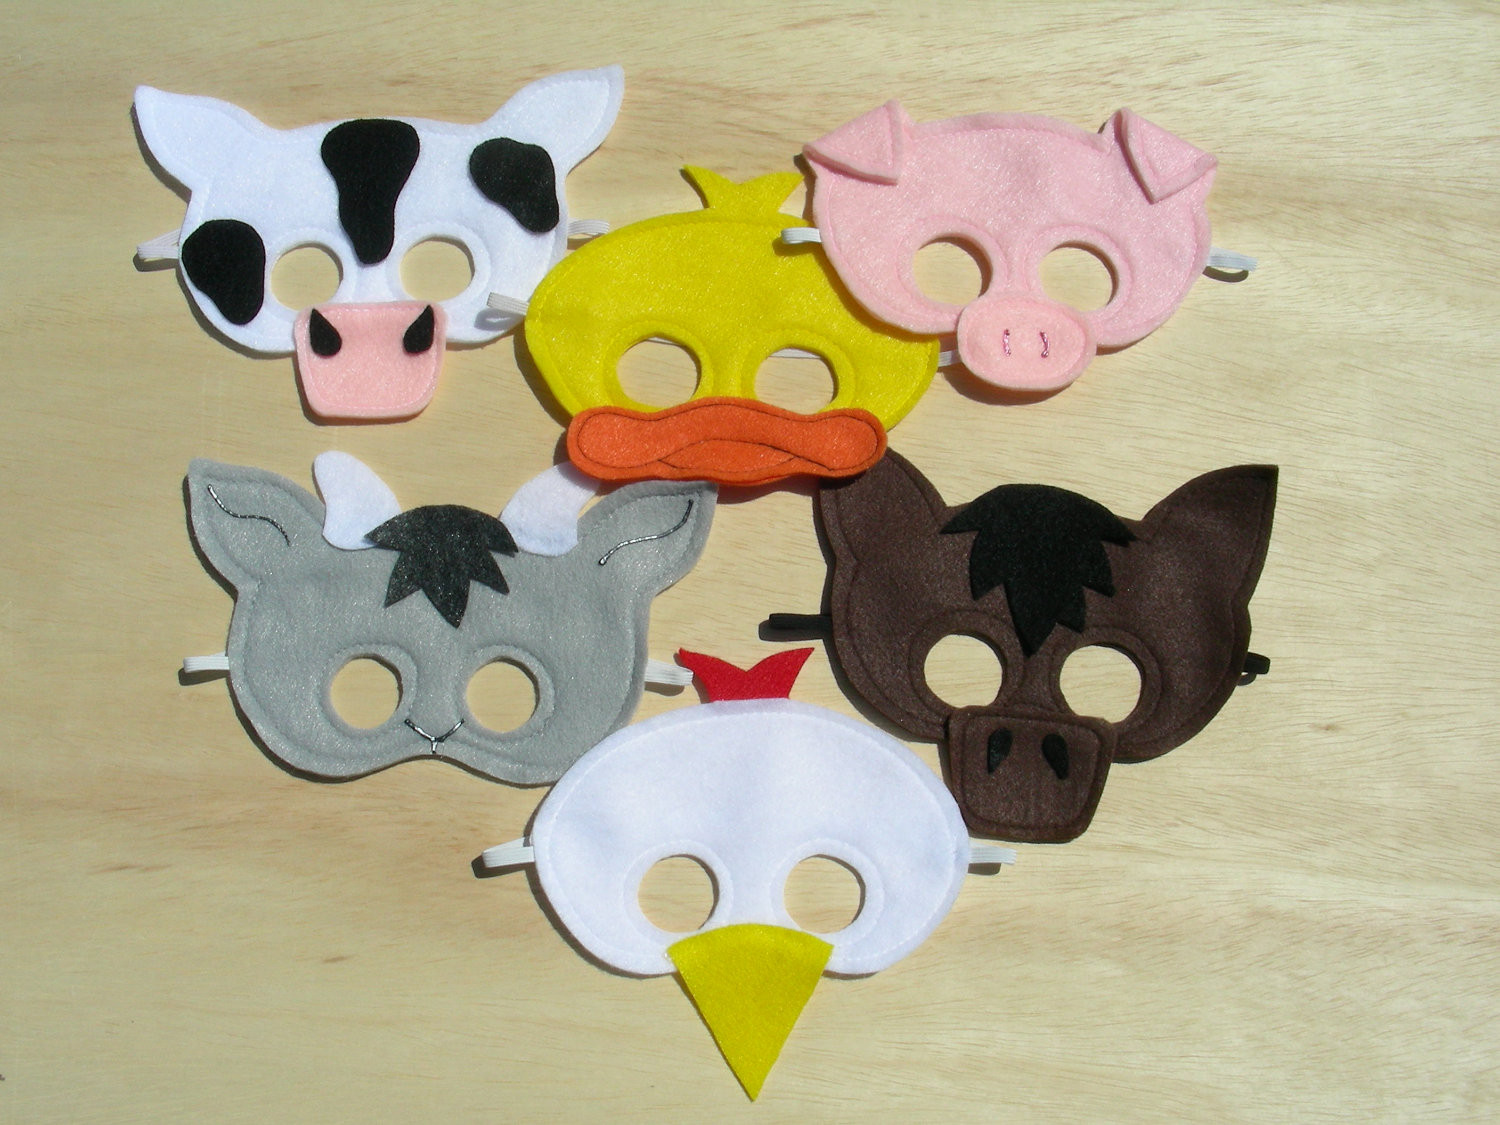 Best ideas about DIY Animal Mask . Save or Pin Child Size Farm Animal Masks DIY Fun for Big Brother Now.